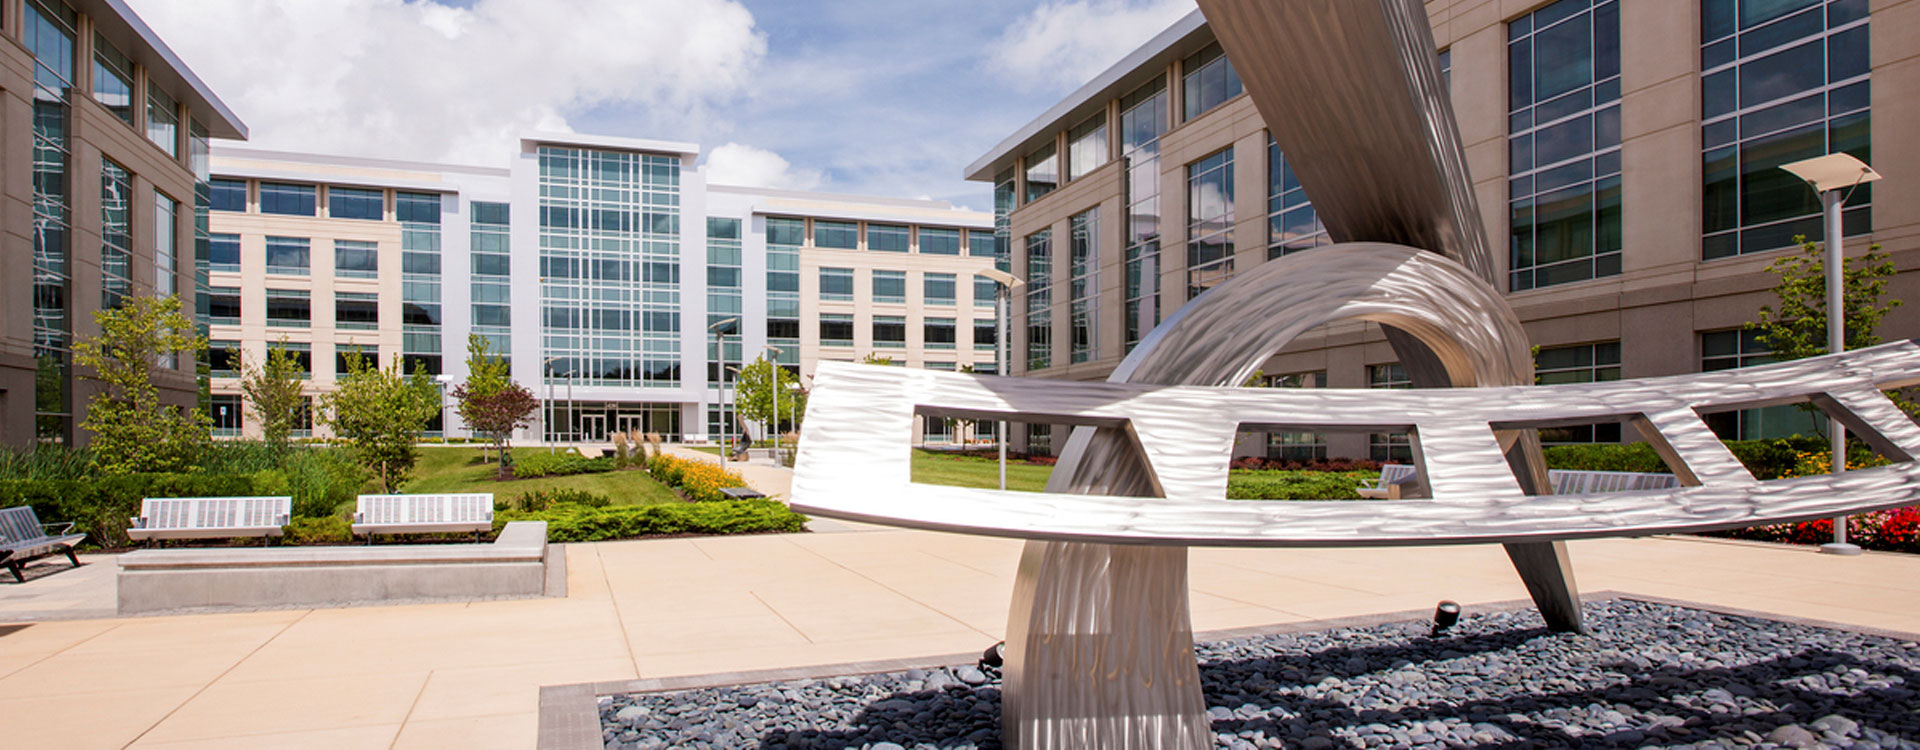 National Business Park in Anne Arundel County